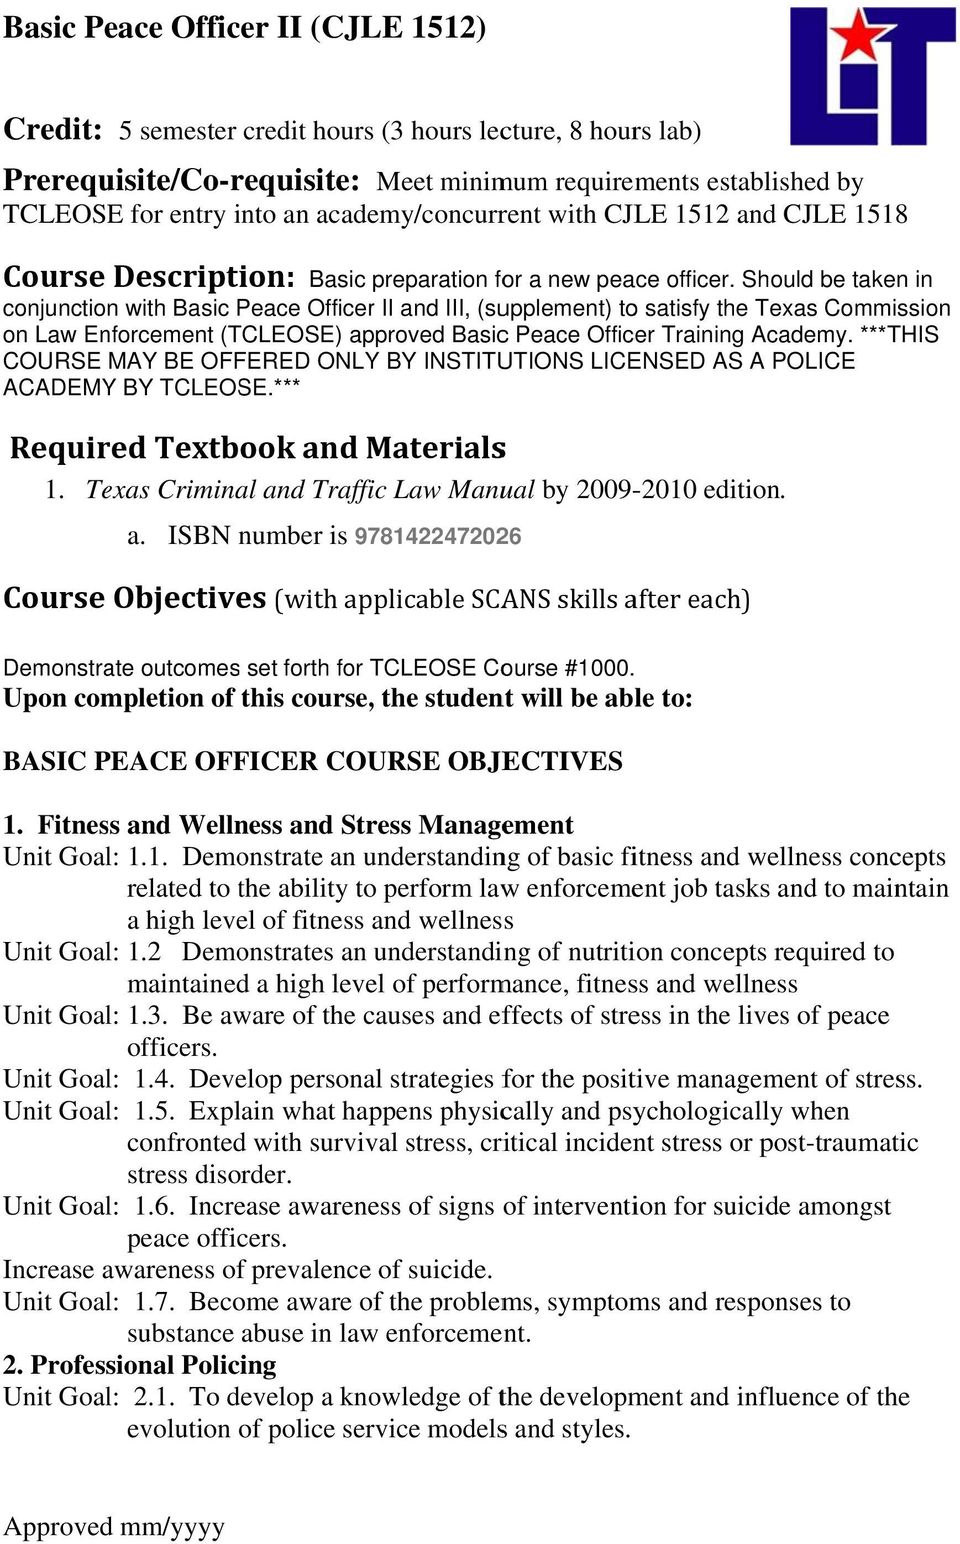 Should be taken in conjunction with Basic Peace Officer II and III, (supplement) to satisfy the Texas Commission on Law Enforcement (TCLEOSE) approved Basicc Peace Officer Training Academy.